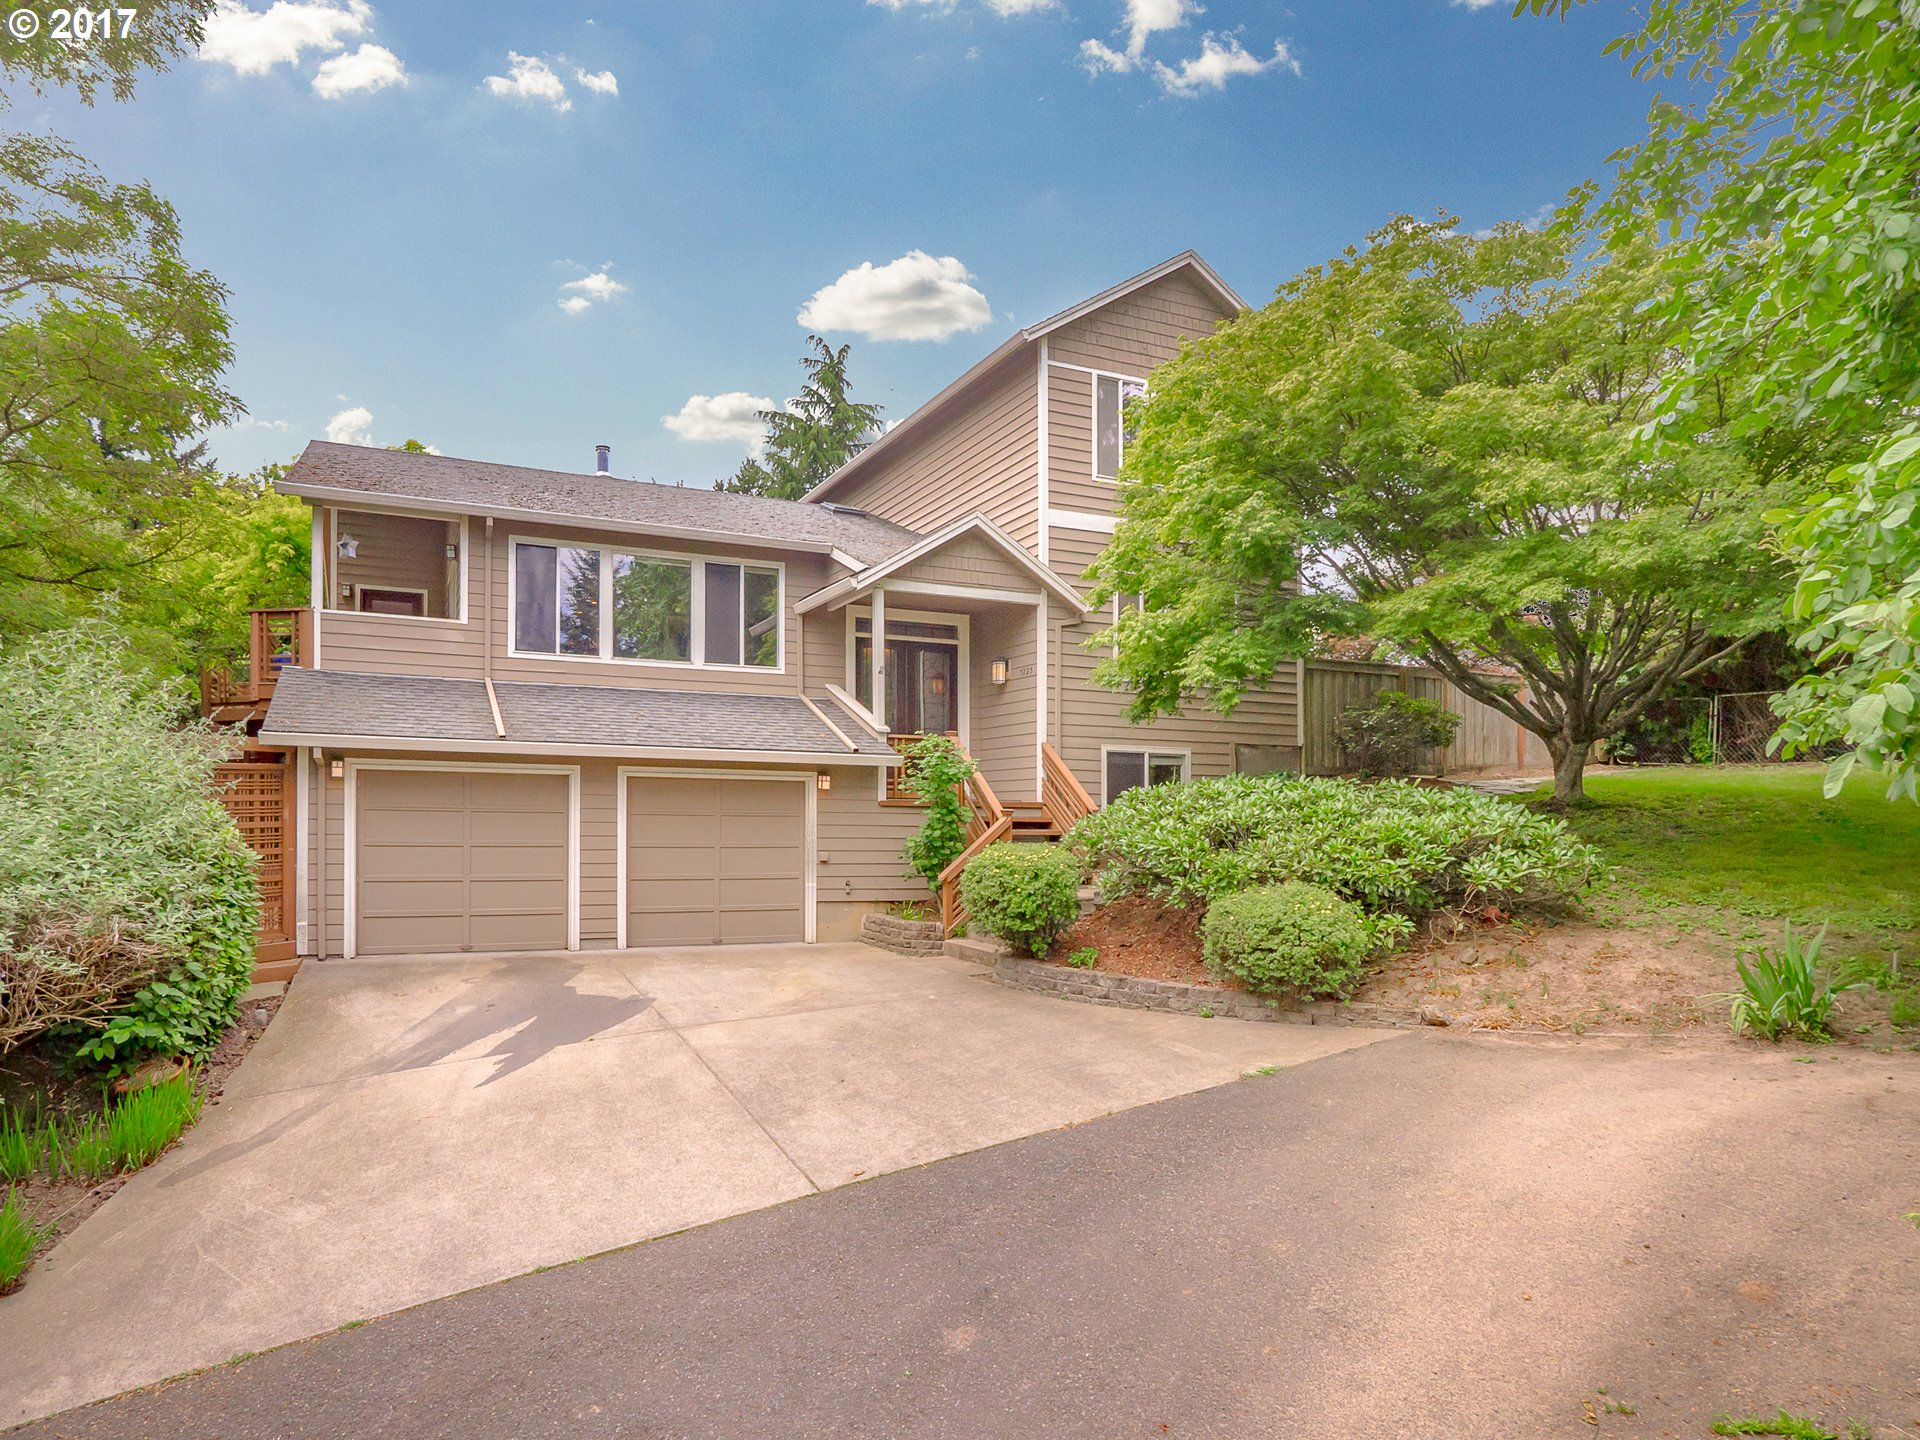 7225 SW 19TH AVE Portland, OR 97219 - MLS #: 17472368